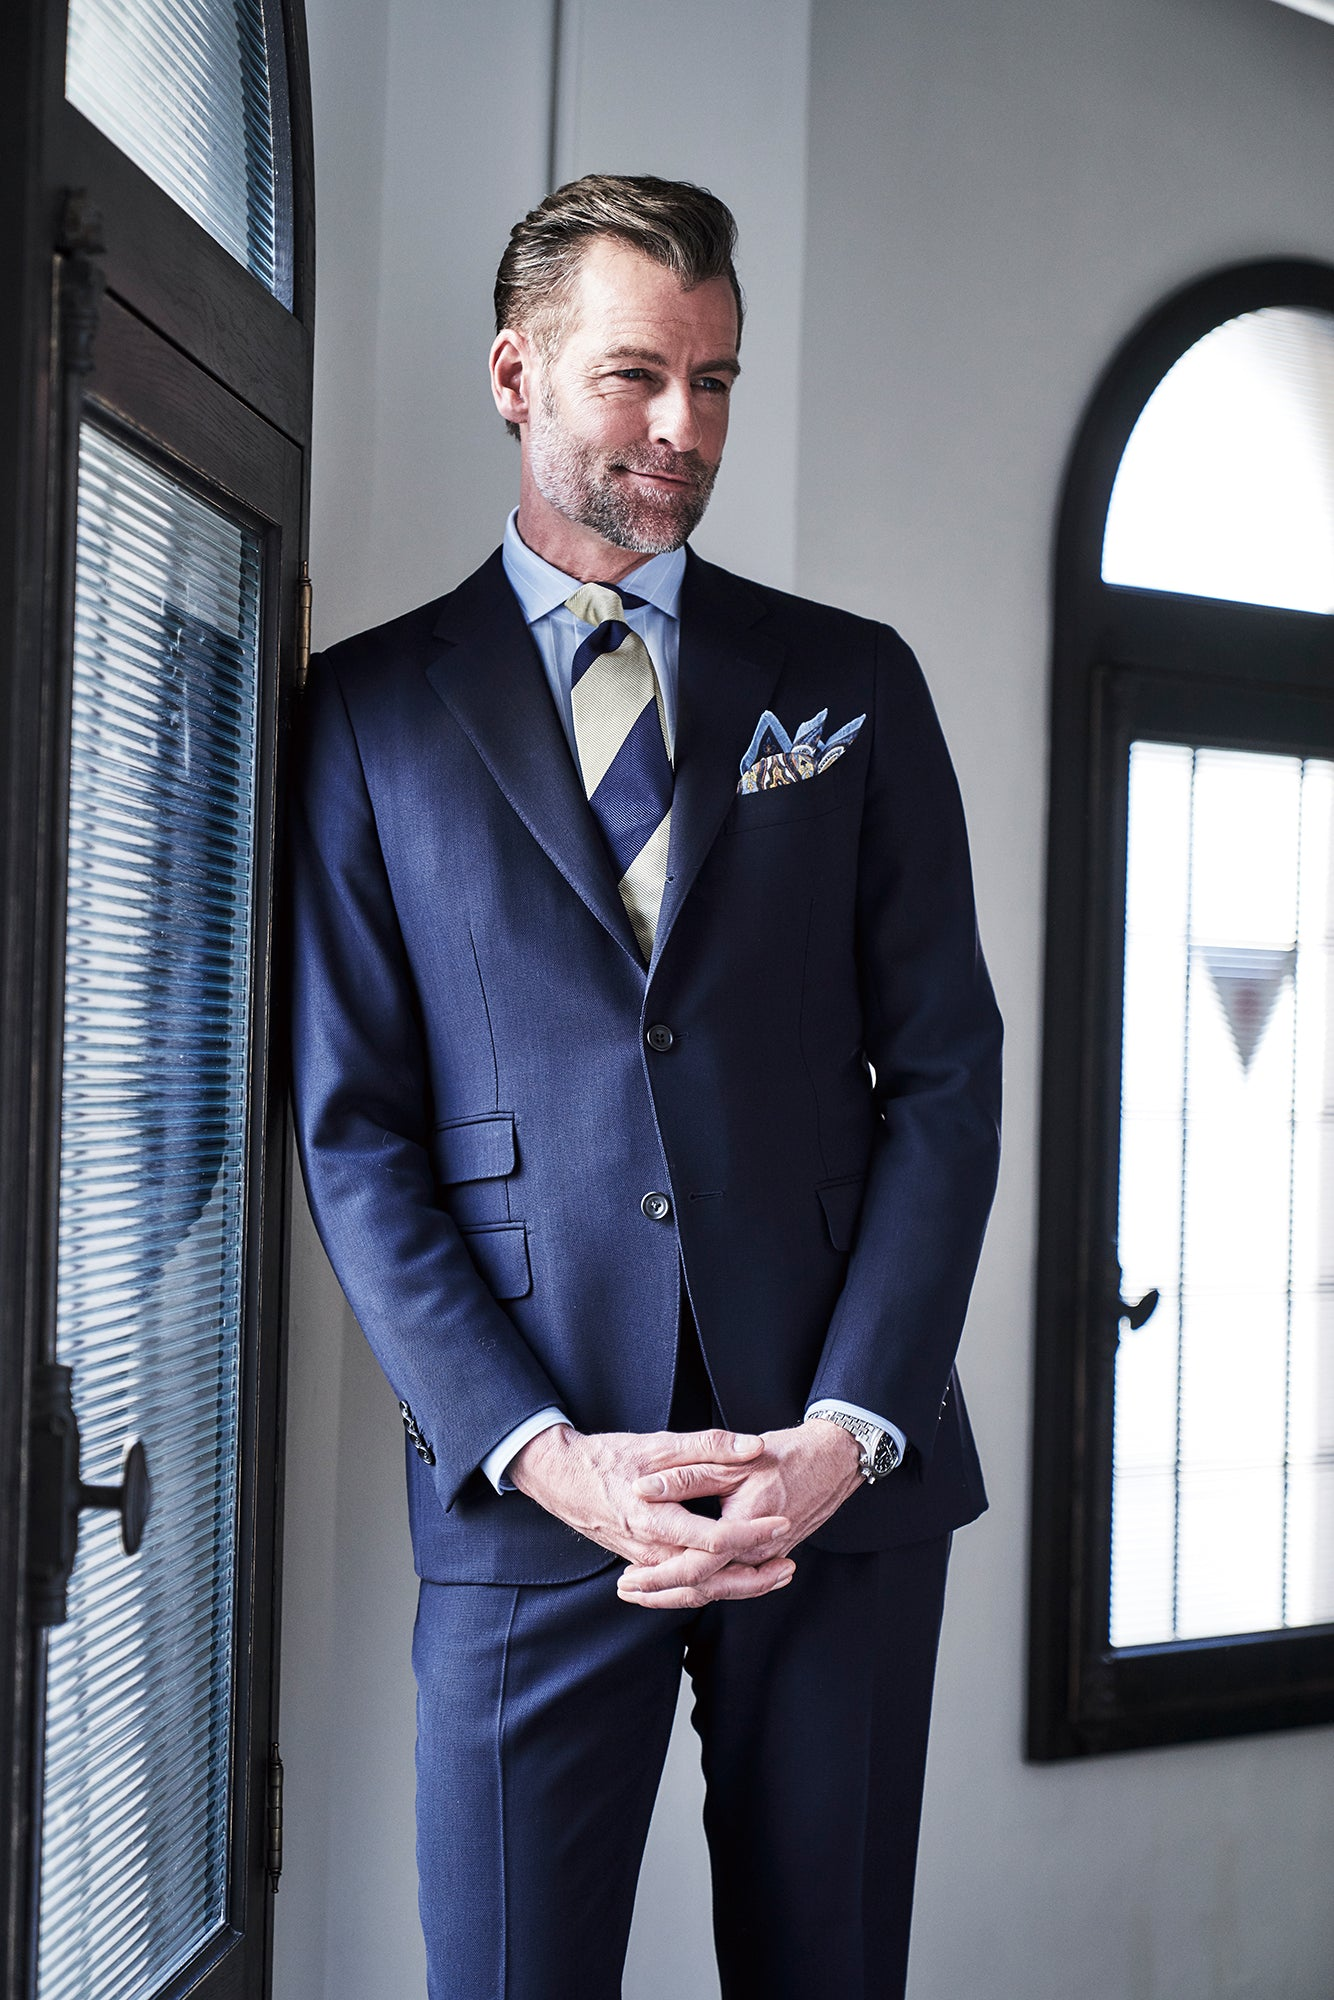 Man smiling in a jersey dress shirt, suit, and tie